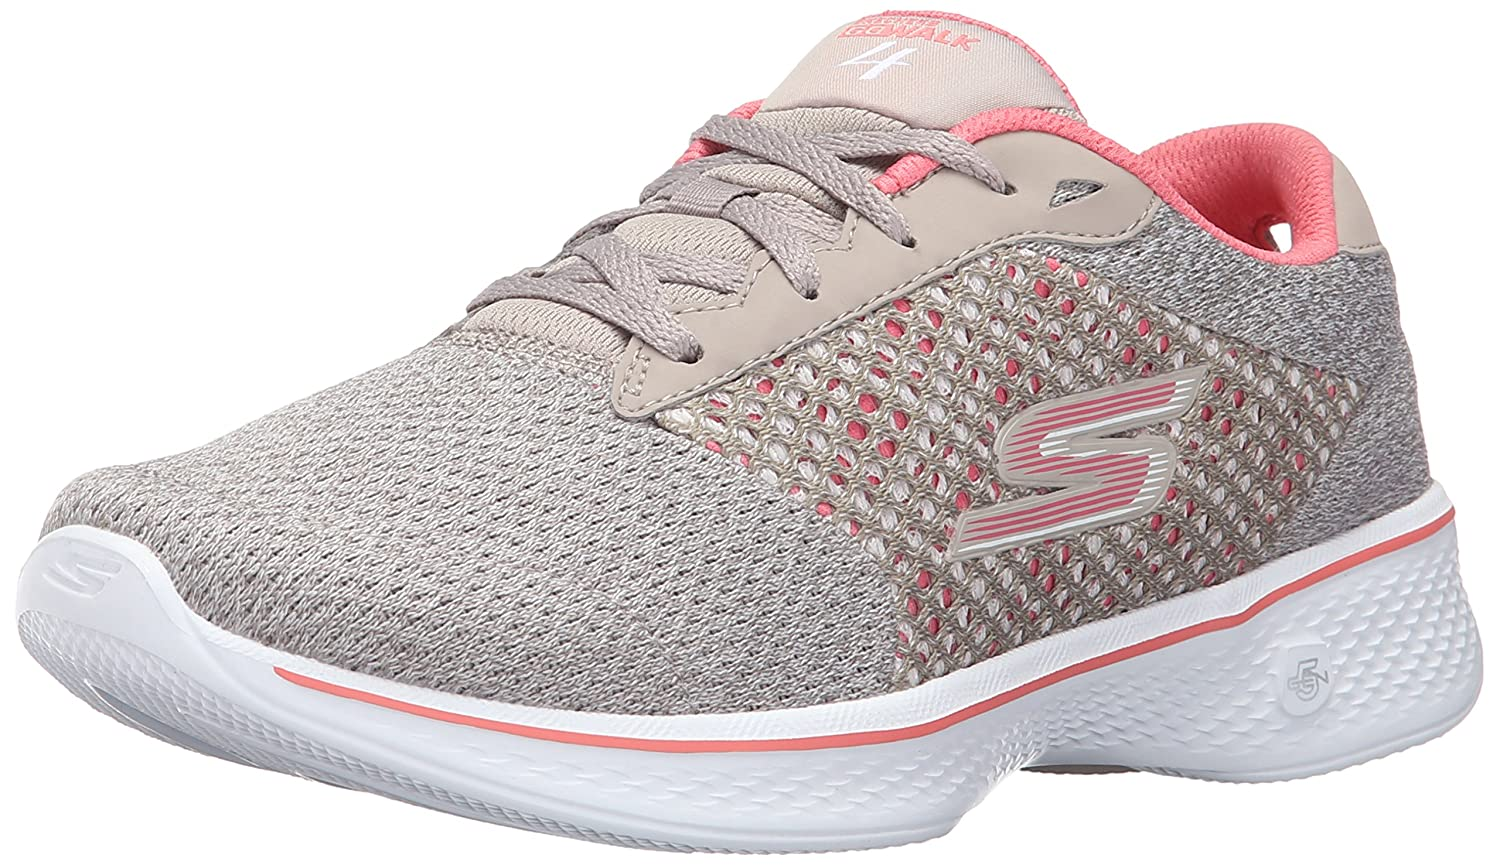 Skechers Performance Women's Go Walk 4 Exceed Lace-up Sneaker B01AH0B2XQ 8.5 B(M) US|Taupe/Coral